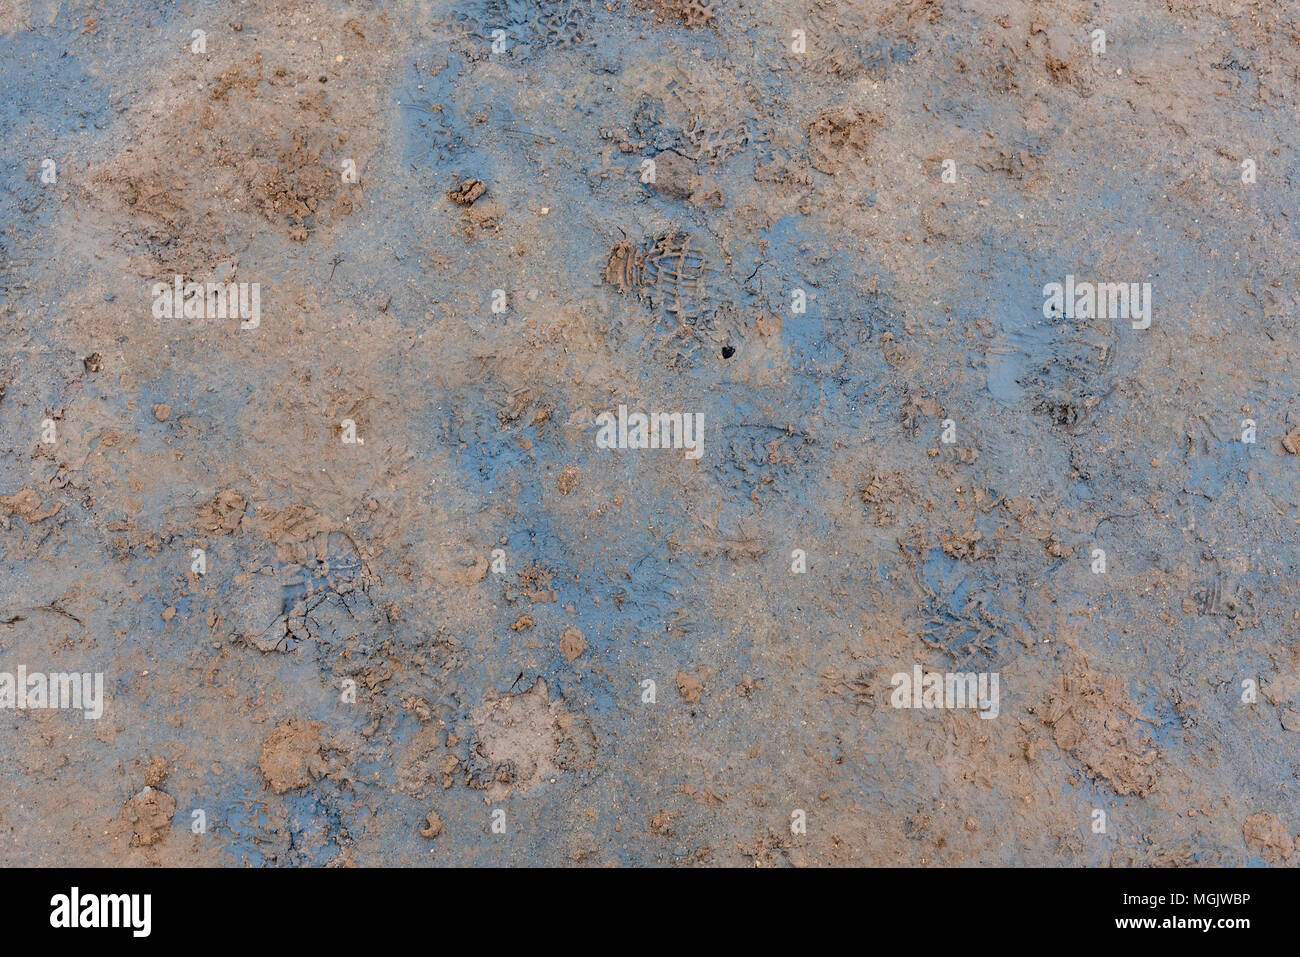 Hverir, signs of life - Stock Image